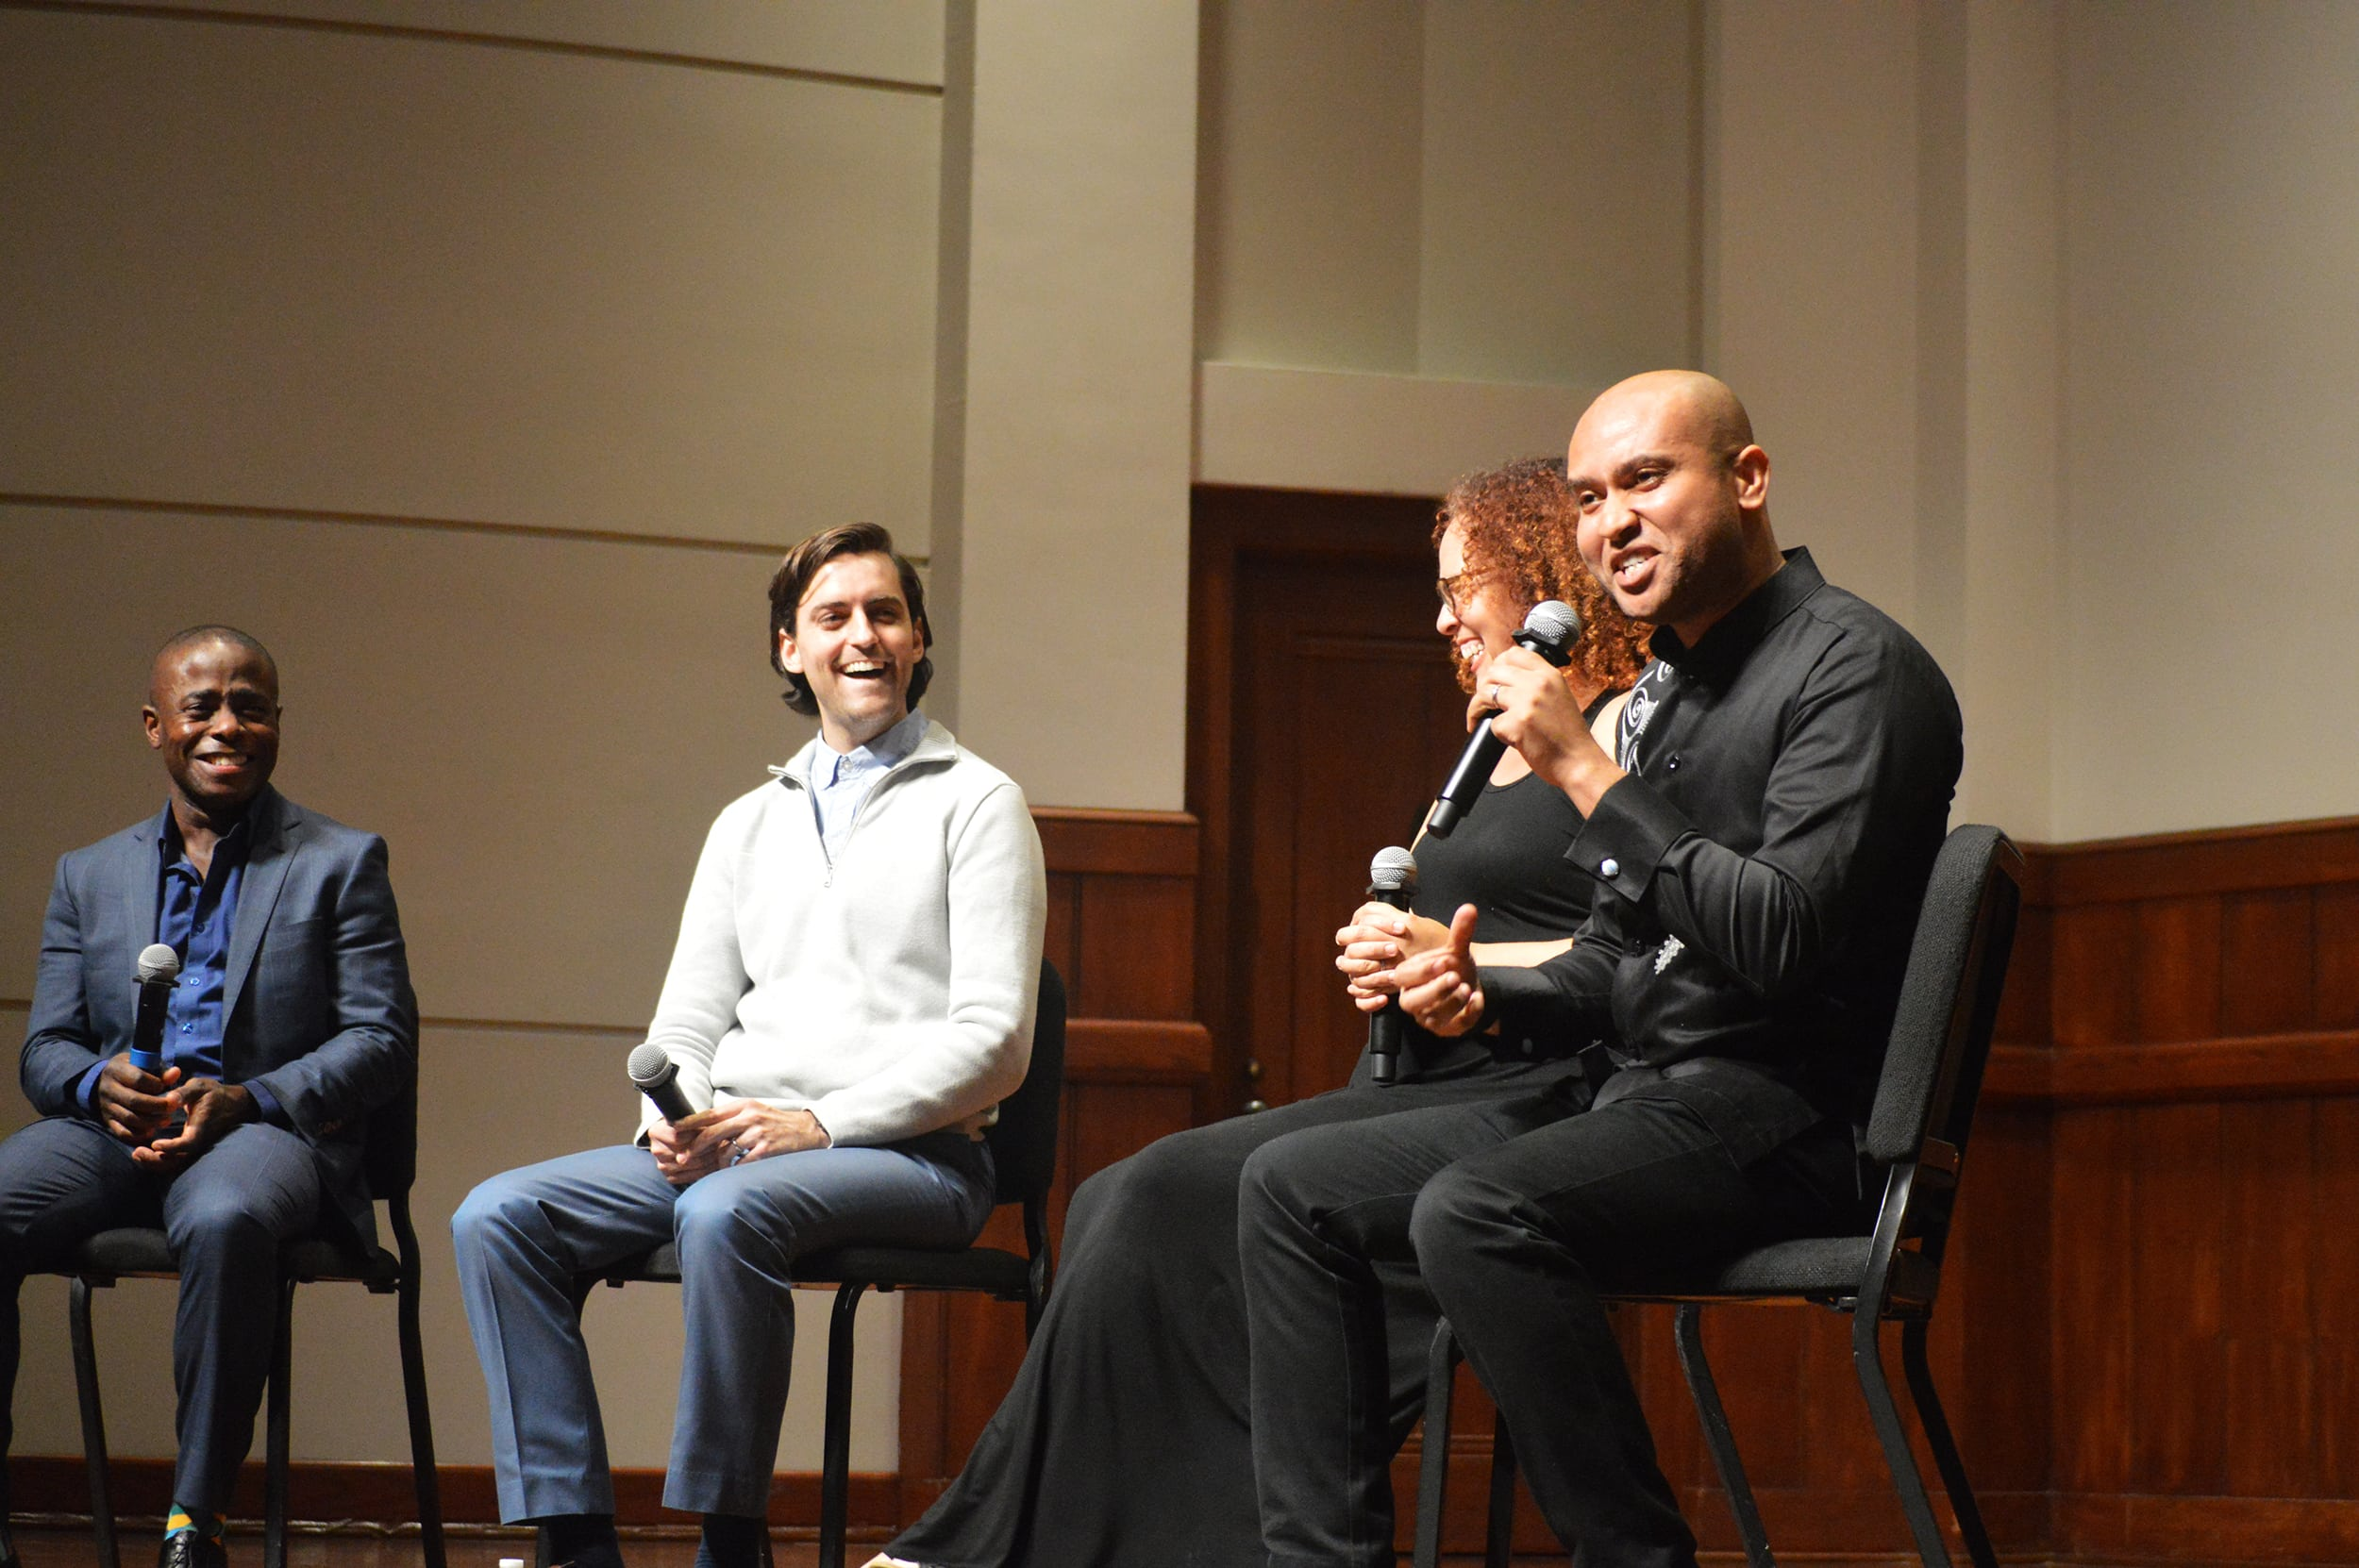 A panel discussion followed the concert and was moderated by Derrick Spiva Jr., Composer, LACO's artist educator, included Anthony McGill, Giovanna Clayton and composer Juan Pablo Contreras at Alfred Newman Recital Hall.